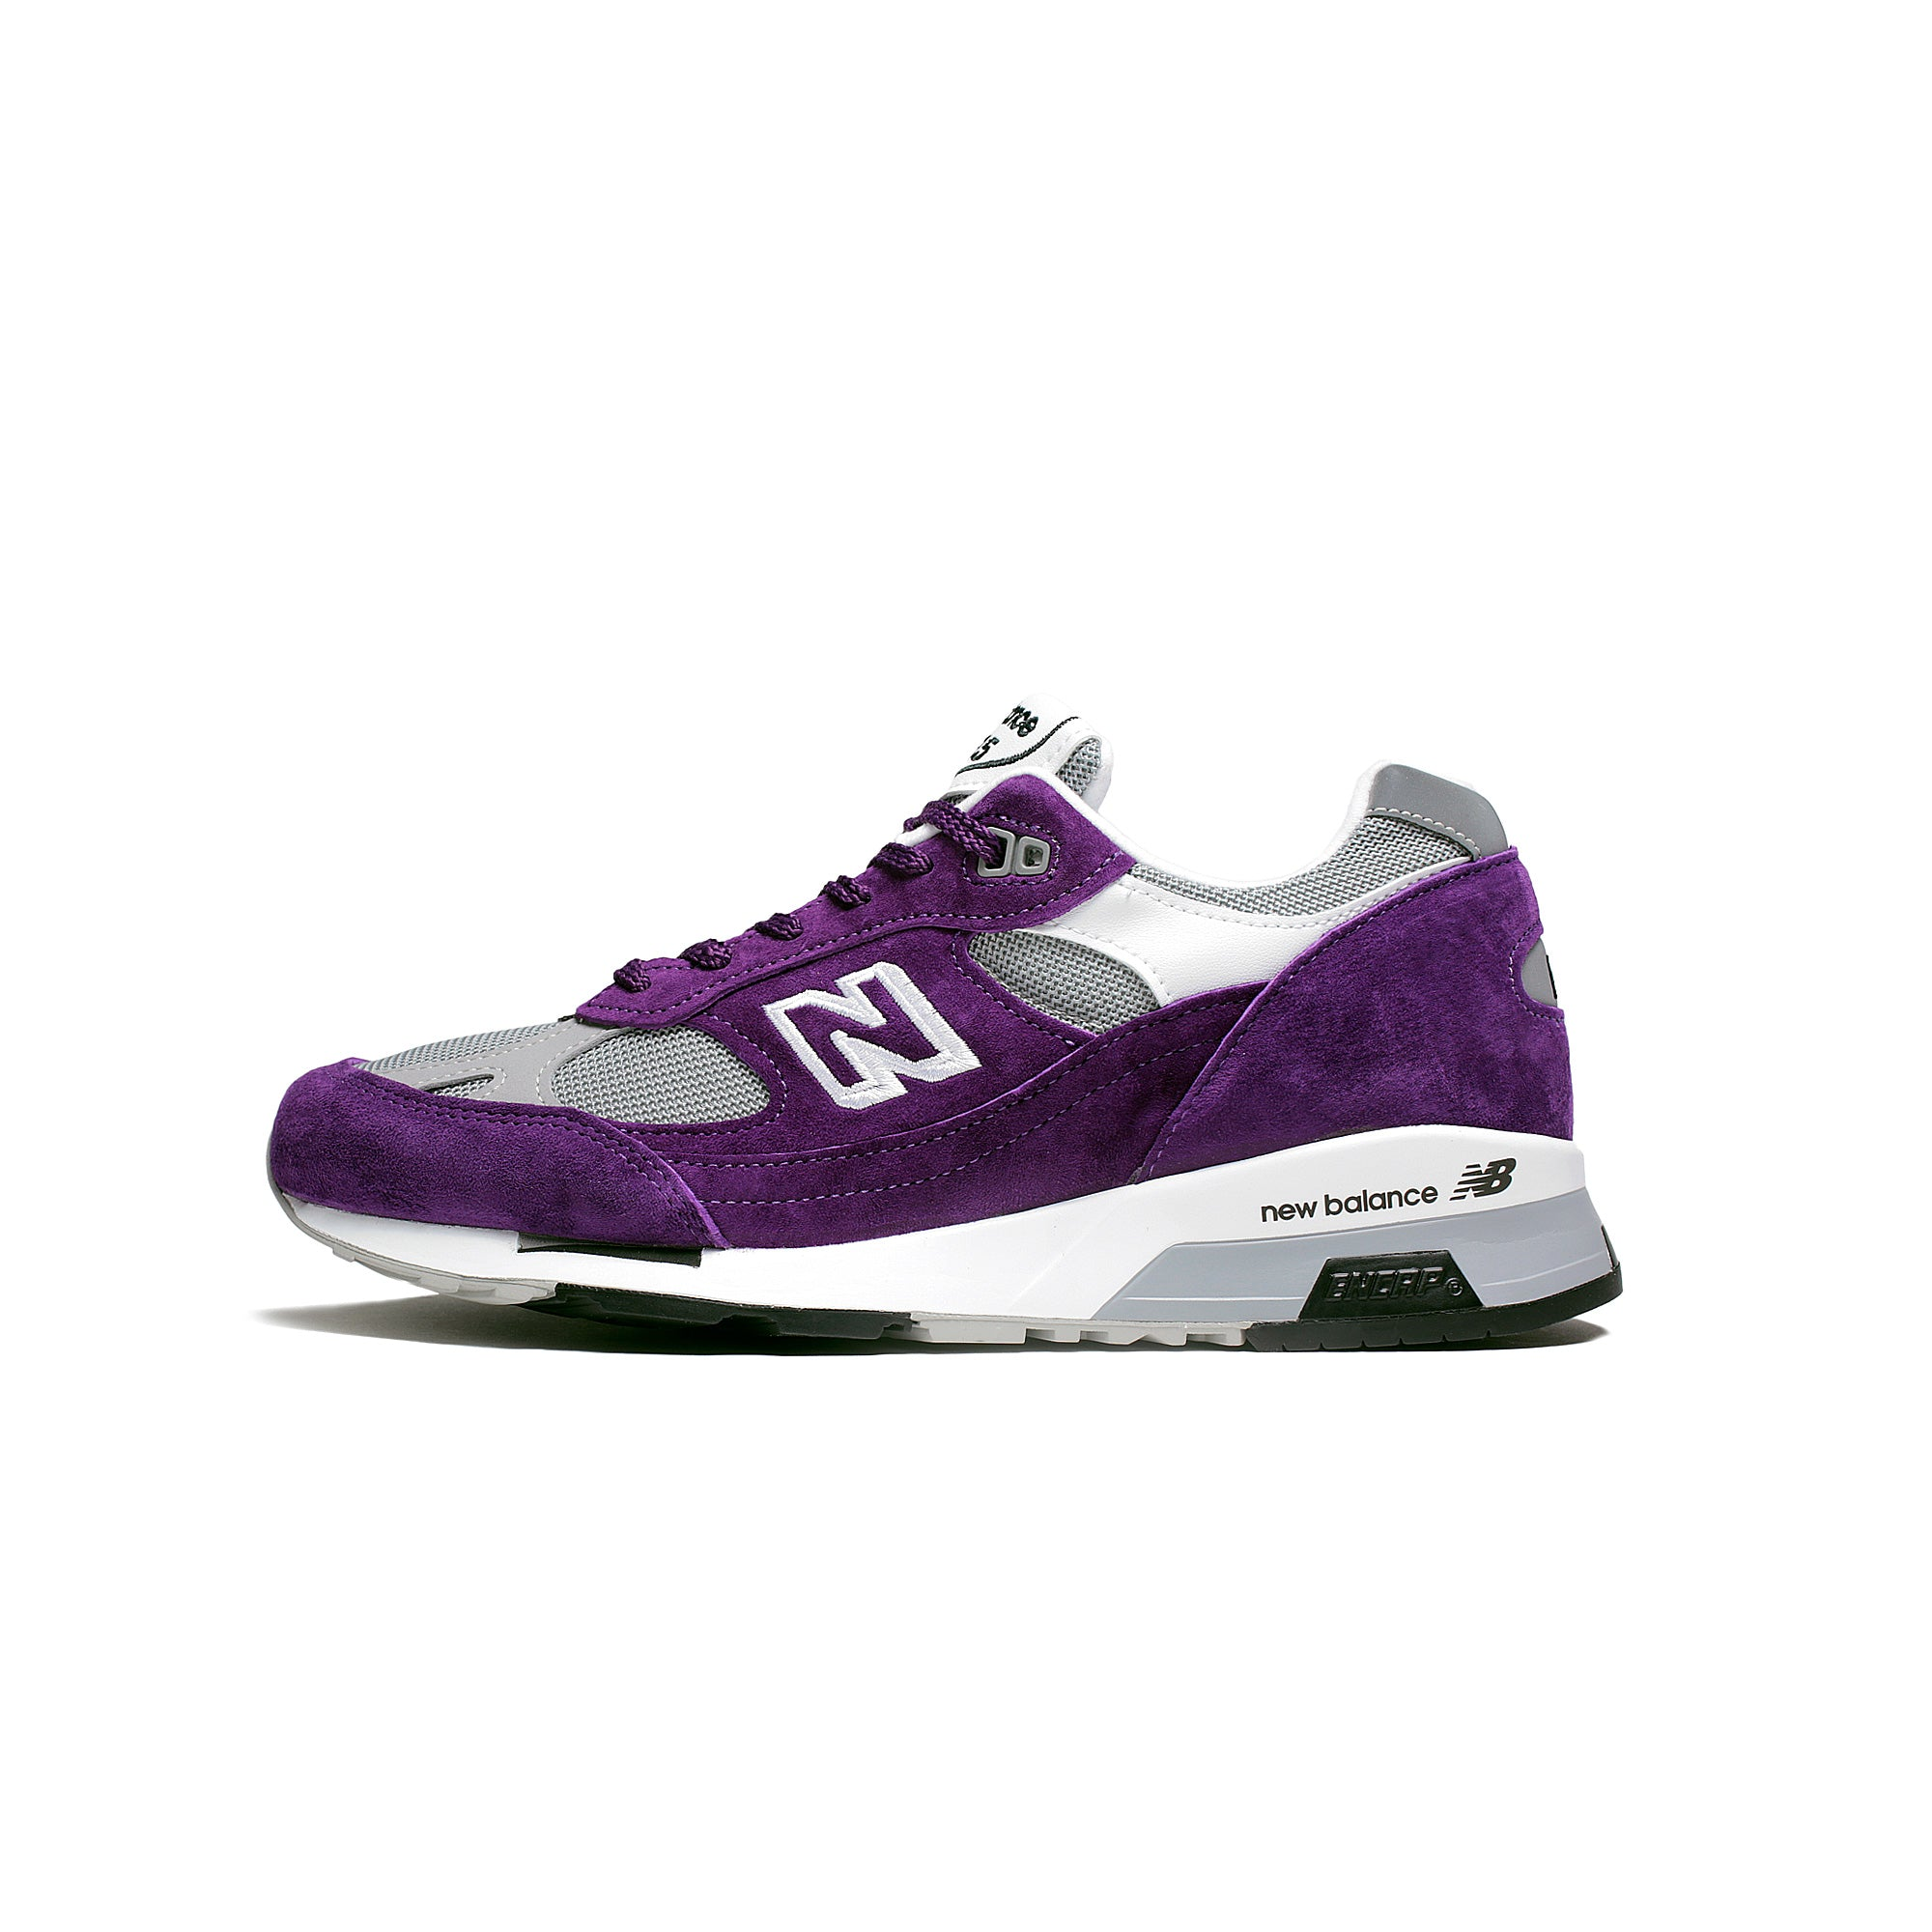 New Balance Men's M9915CC Suede Shoes Purple